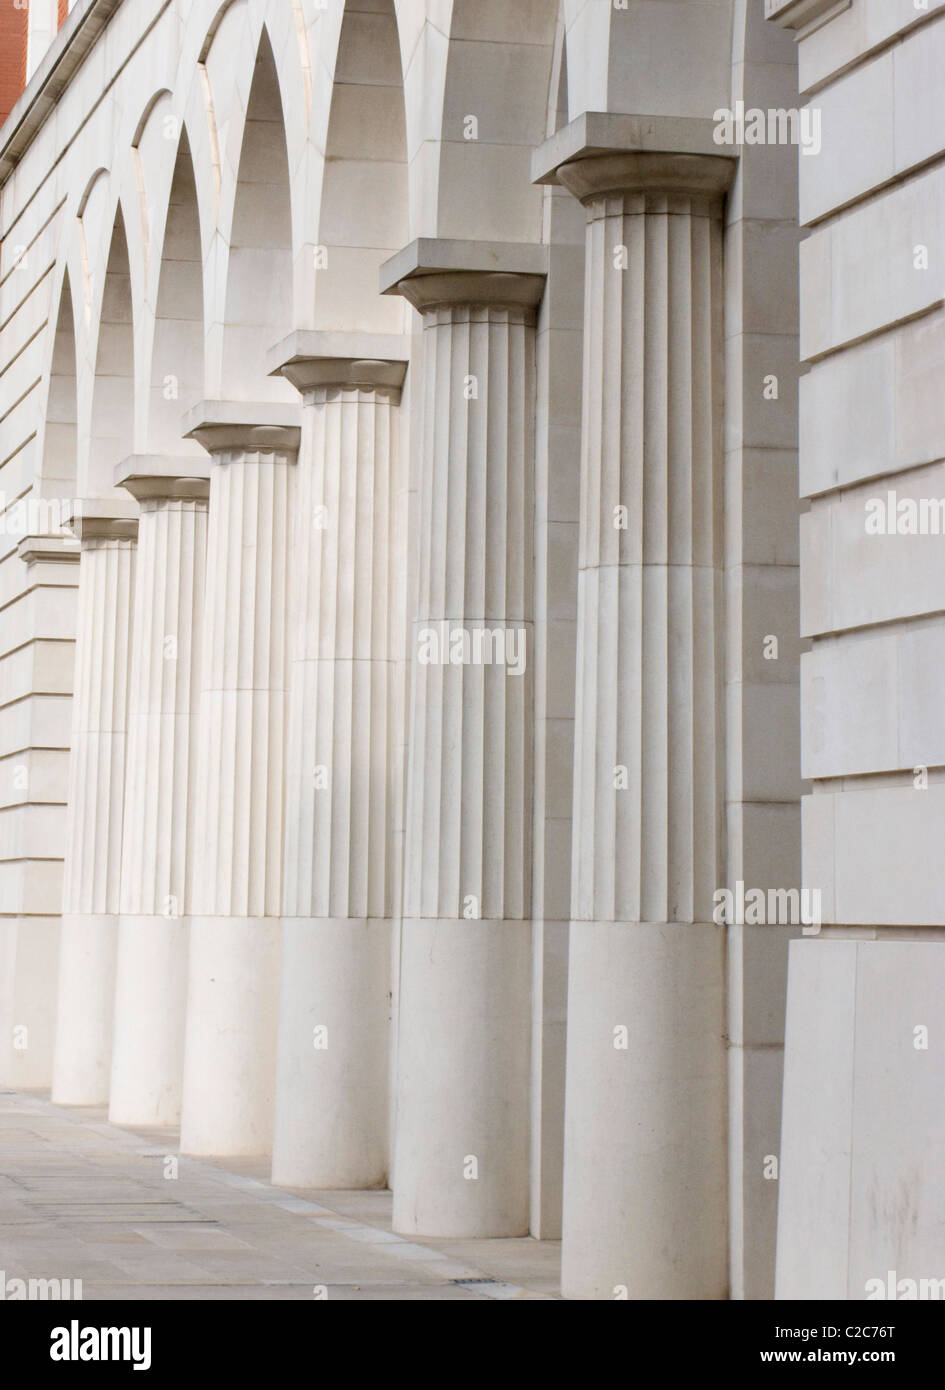 Columns carved stone roman style arch - Stock Image